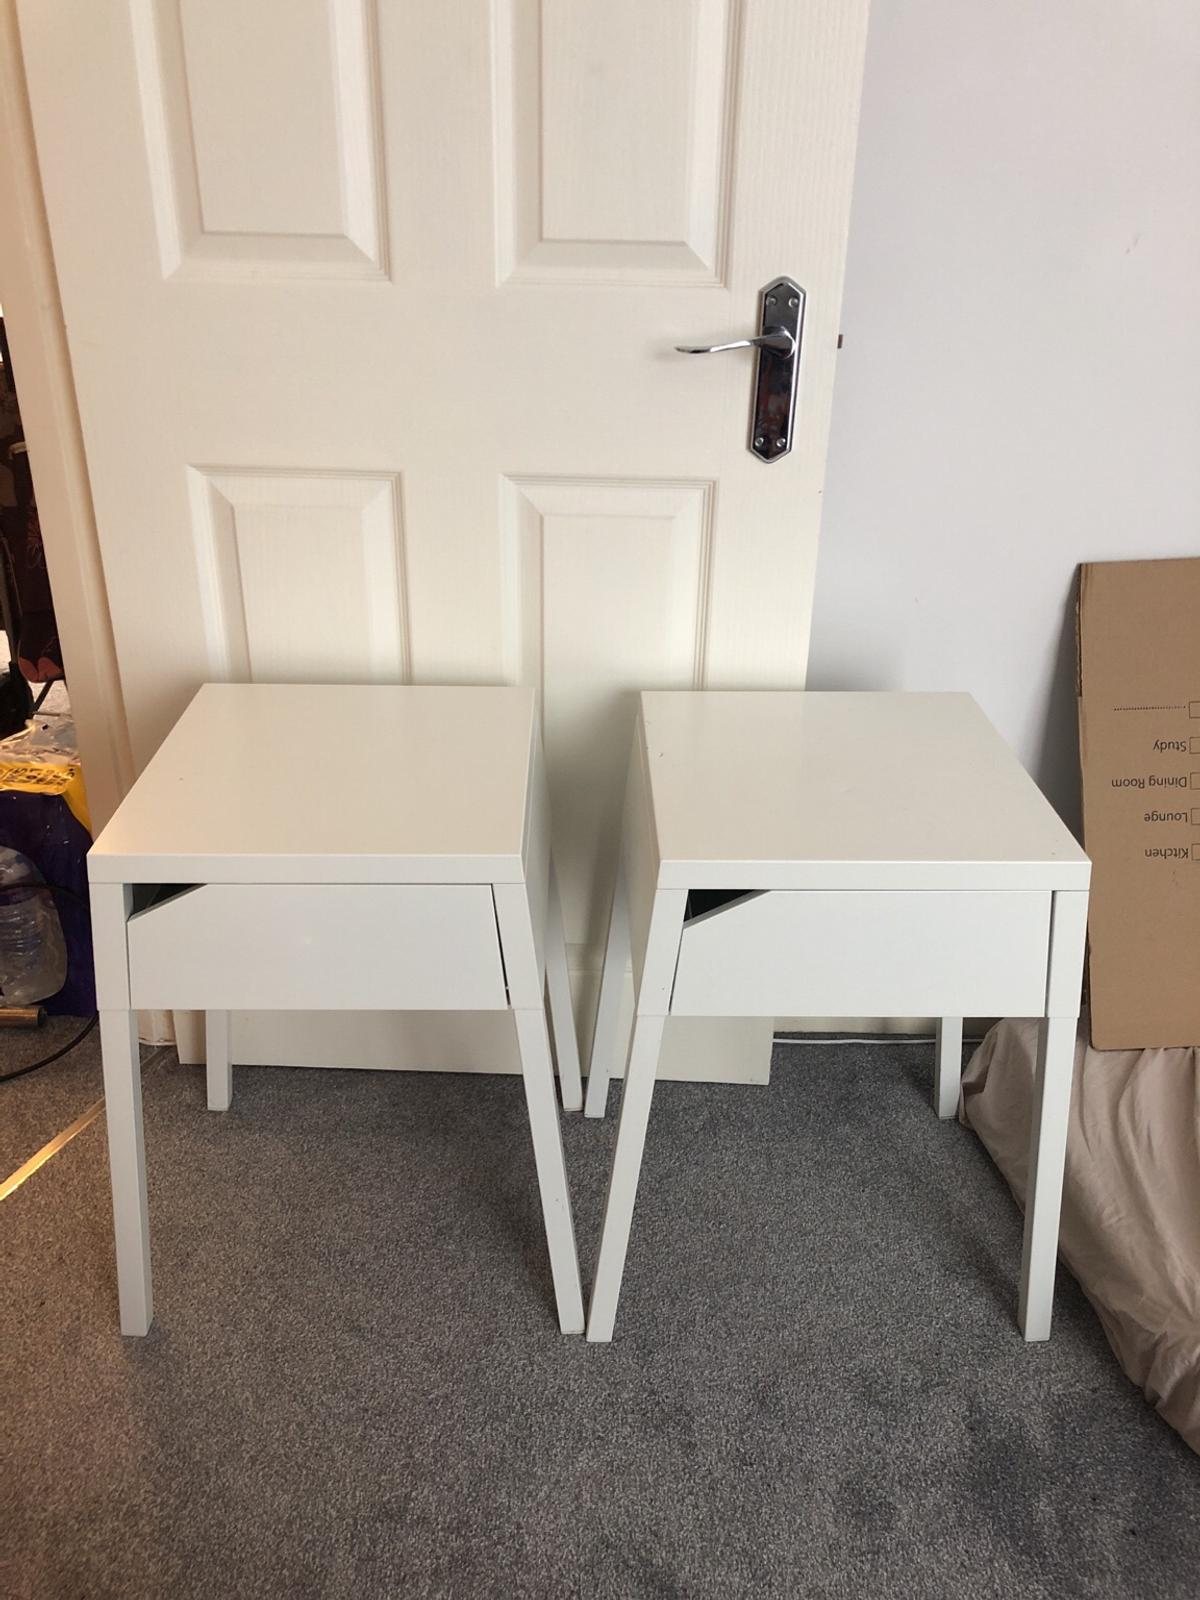 Picture of: Ikea Selje Bedside Table White Metal In Nw10 London Borough Of Brent For 23 00 For Sale Shpock